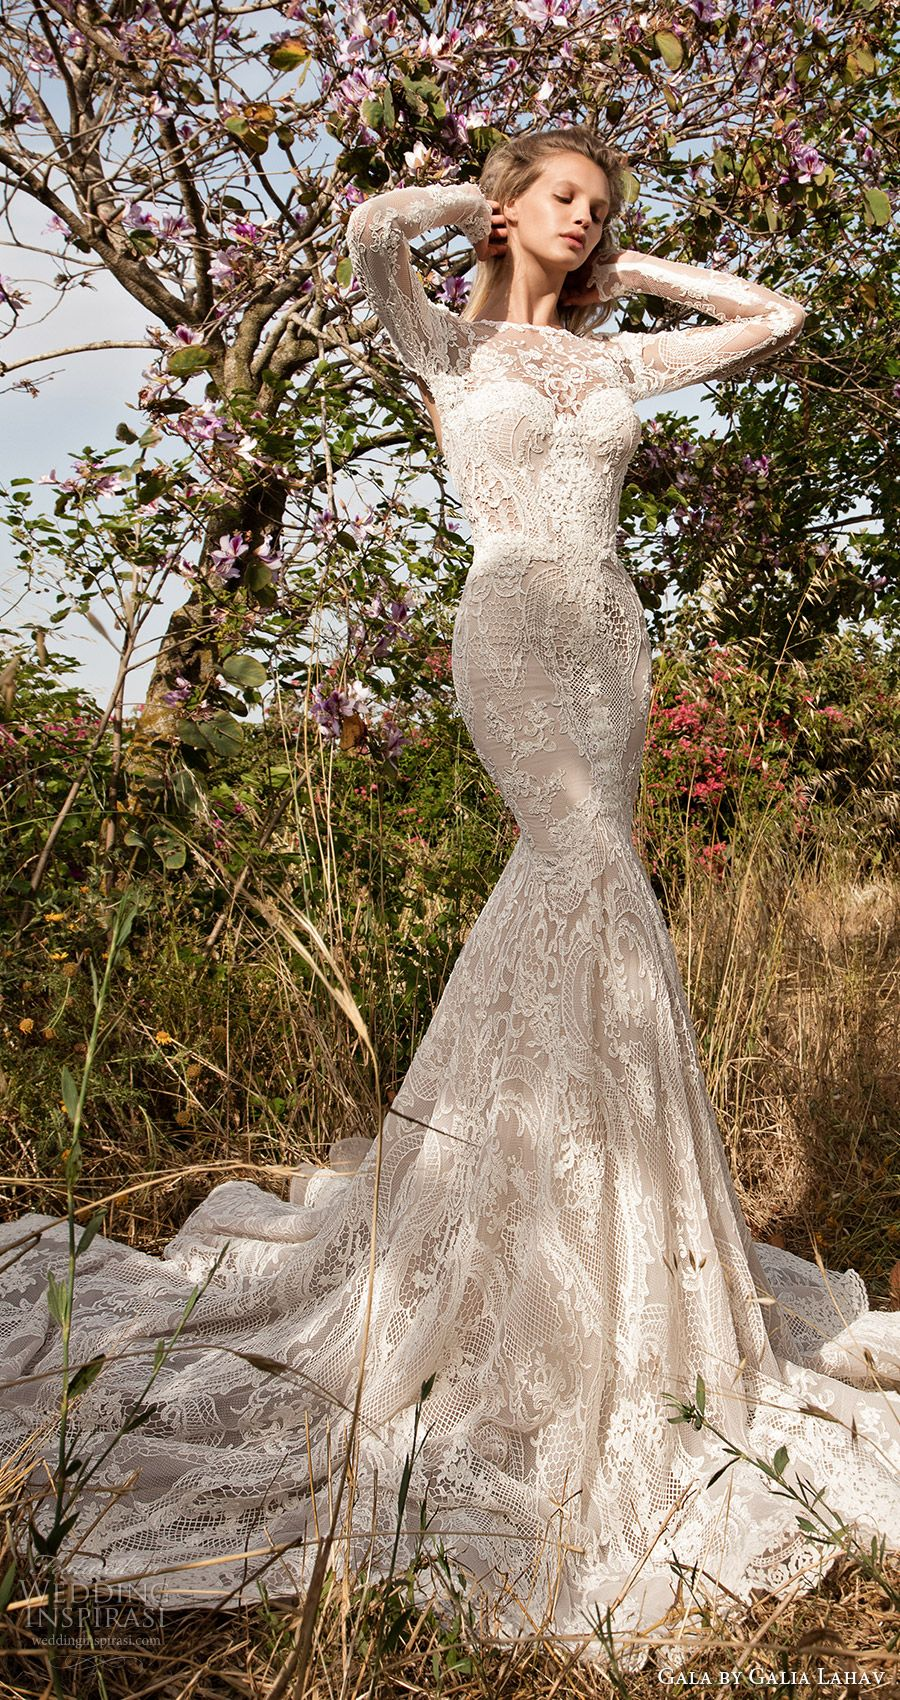 Gala by galia lahav spring wedding dresses u gala no ii bridal